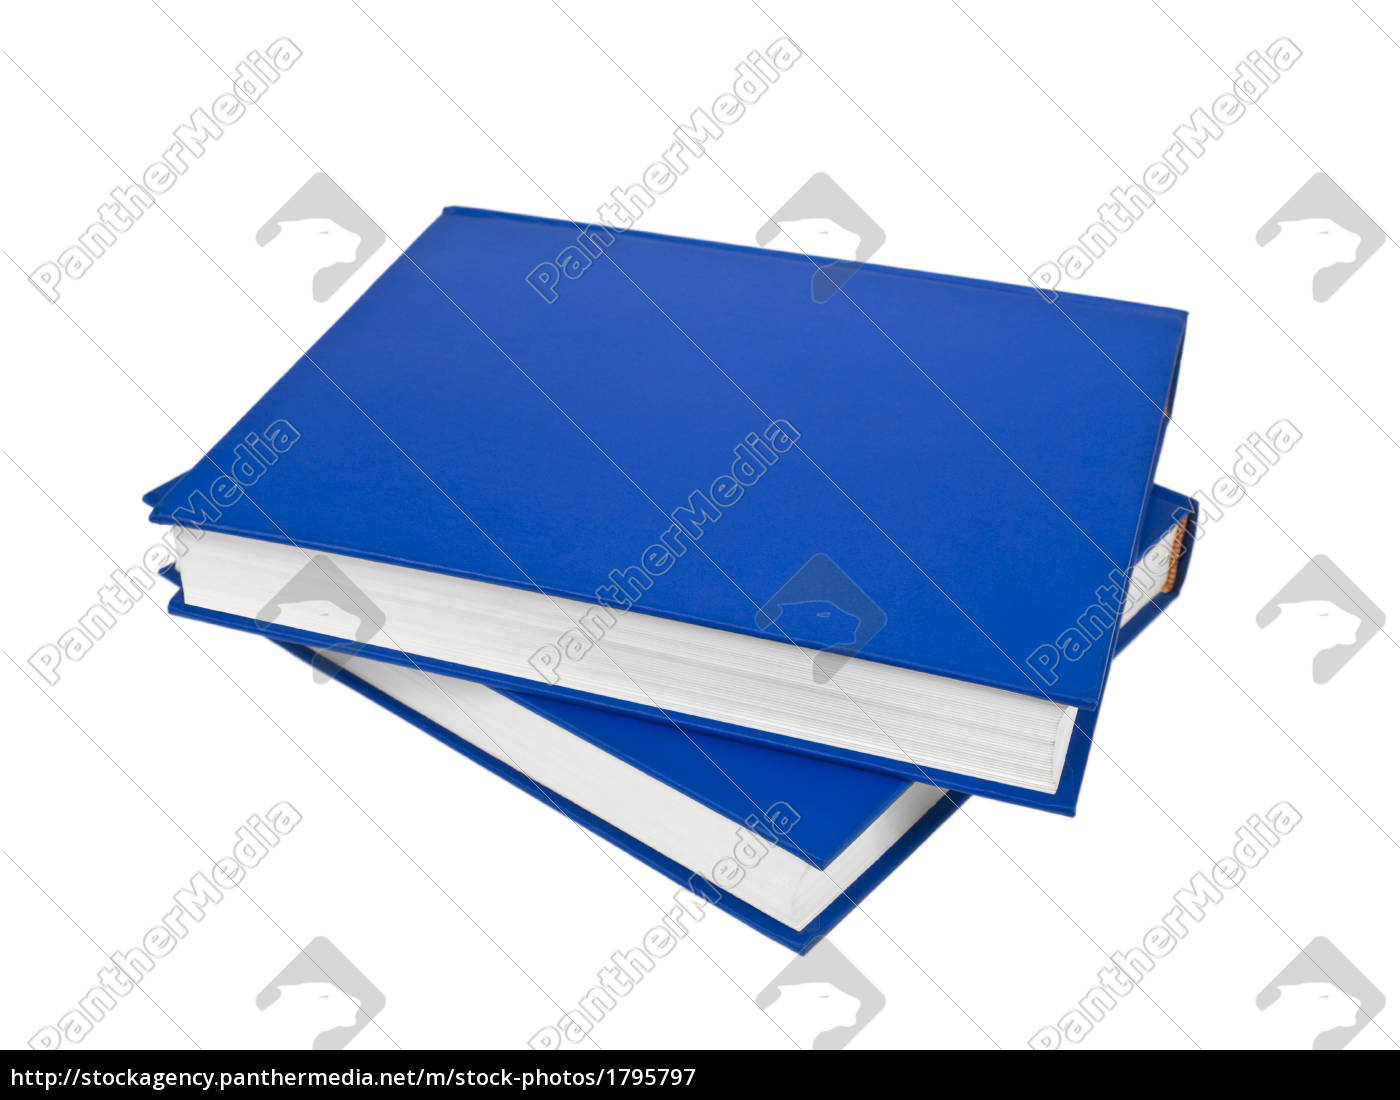 blue, books - 1795797